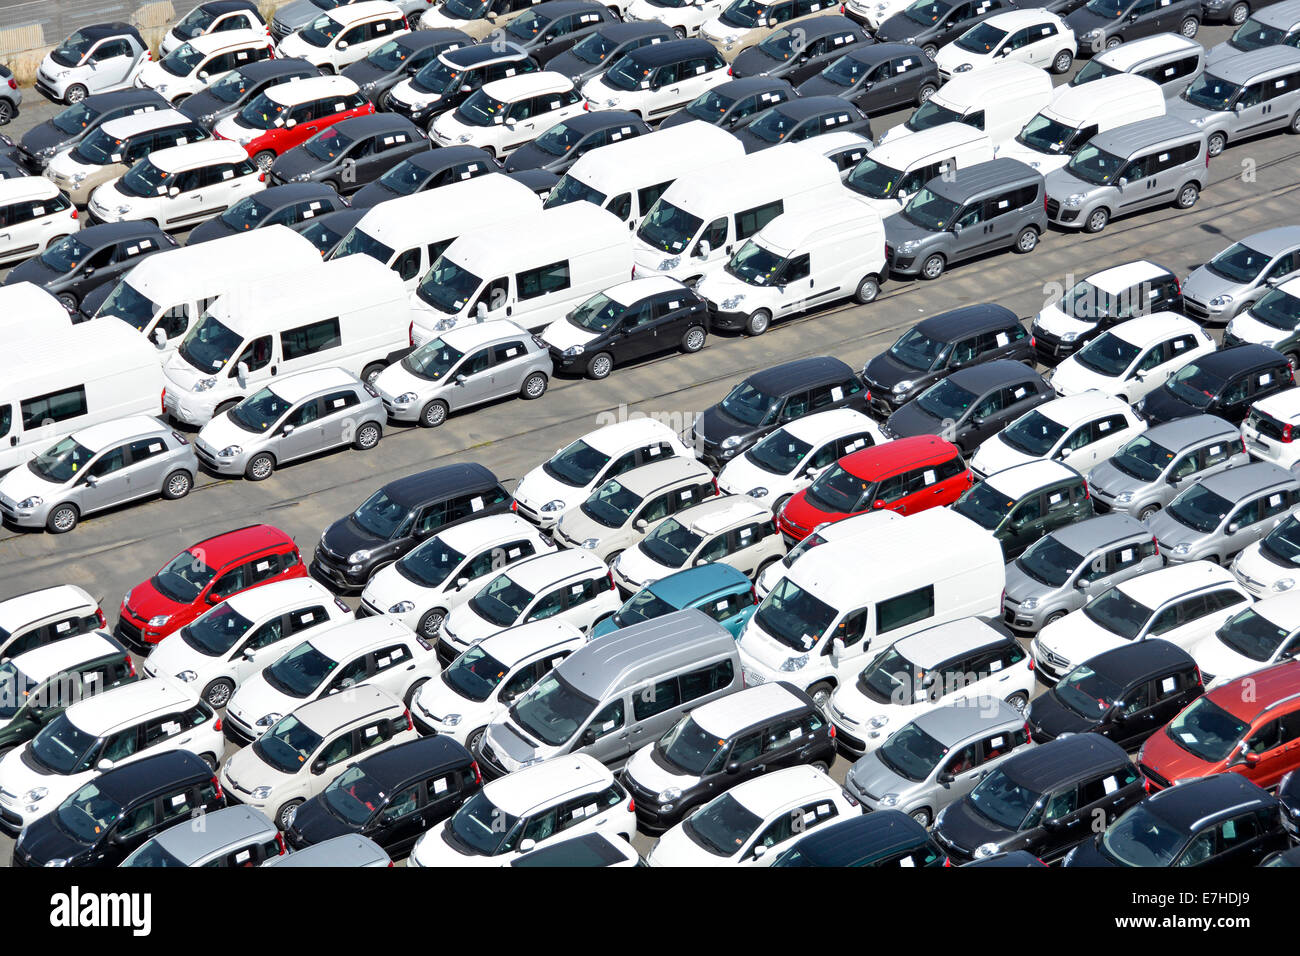 New Cars And Vans Held In Parking Lot On The Jetty At The Port Of